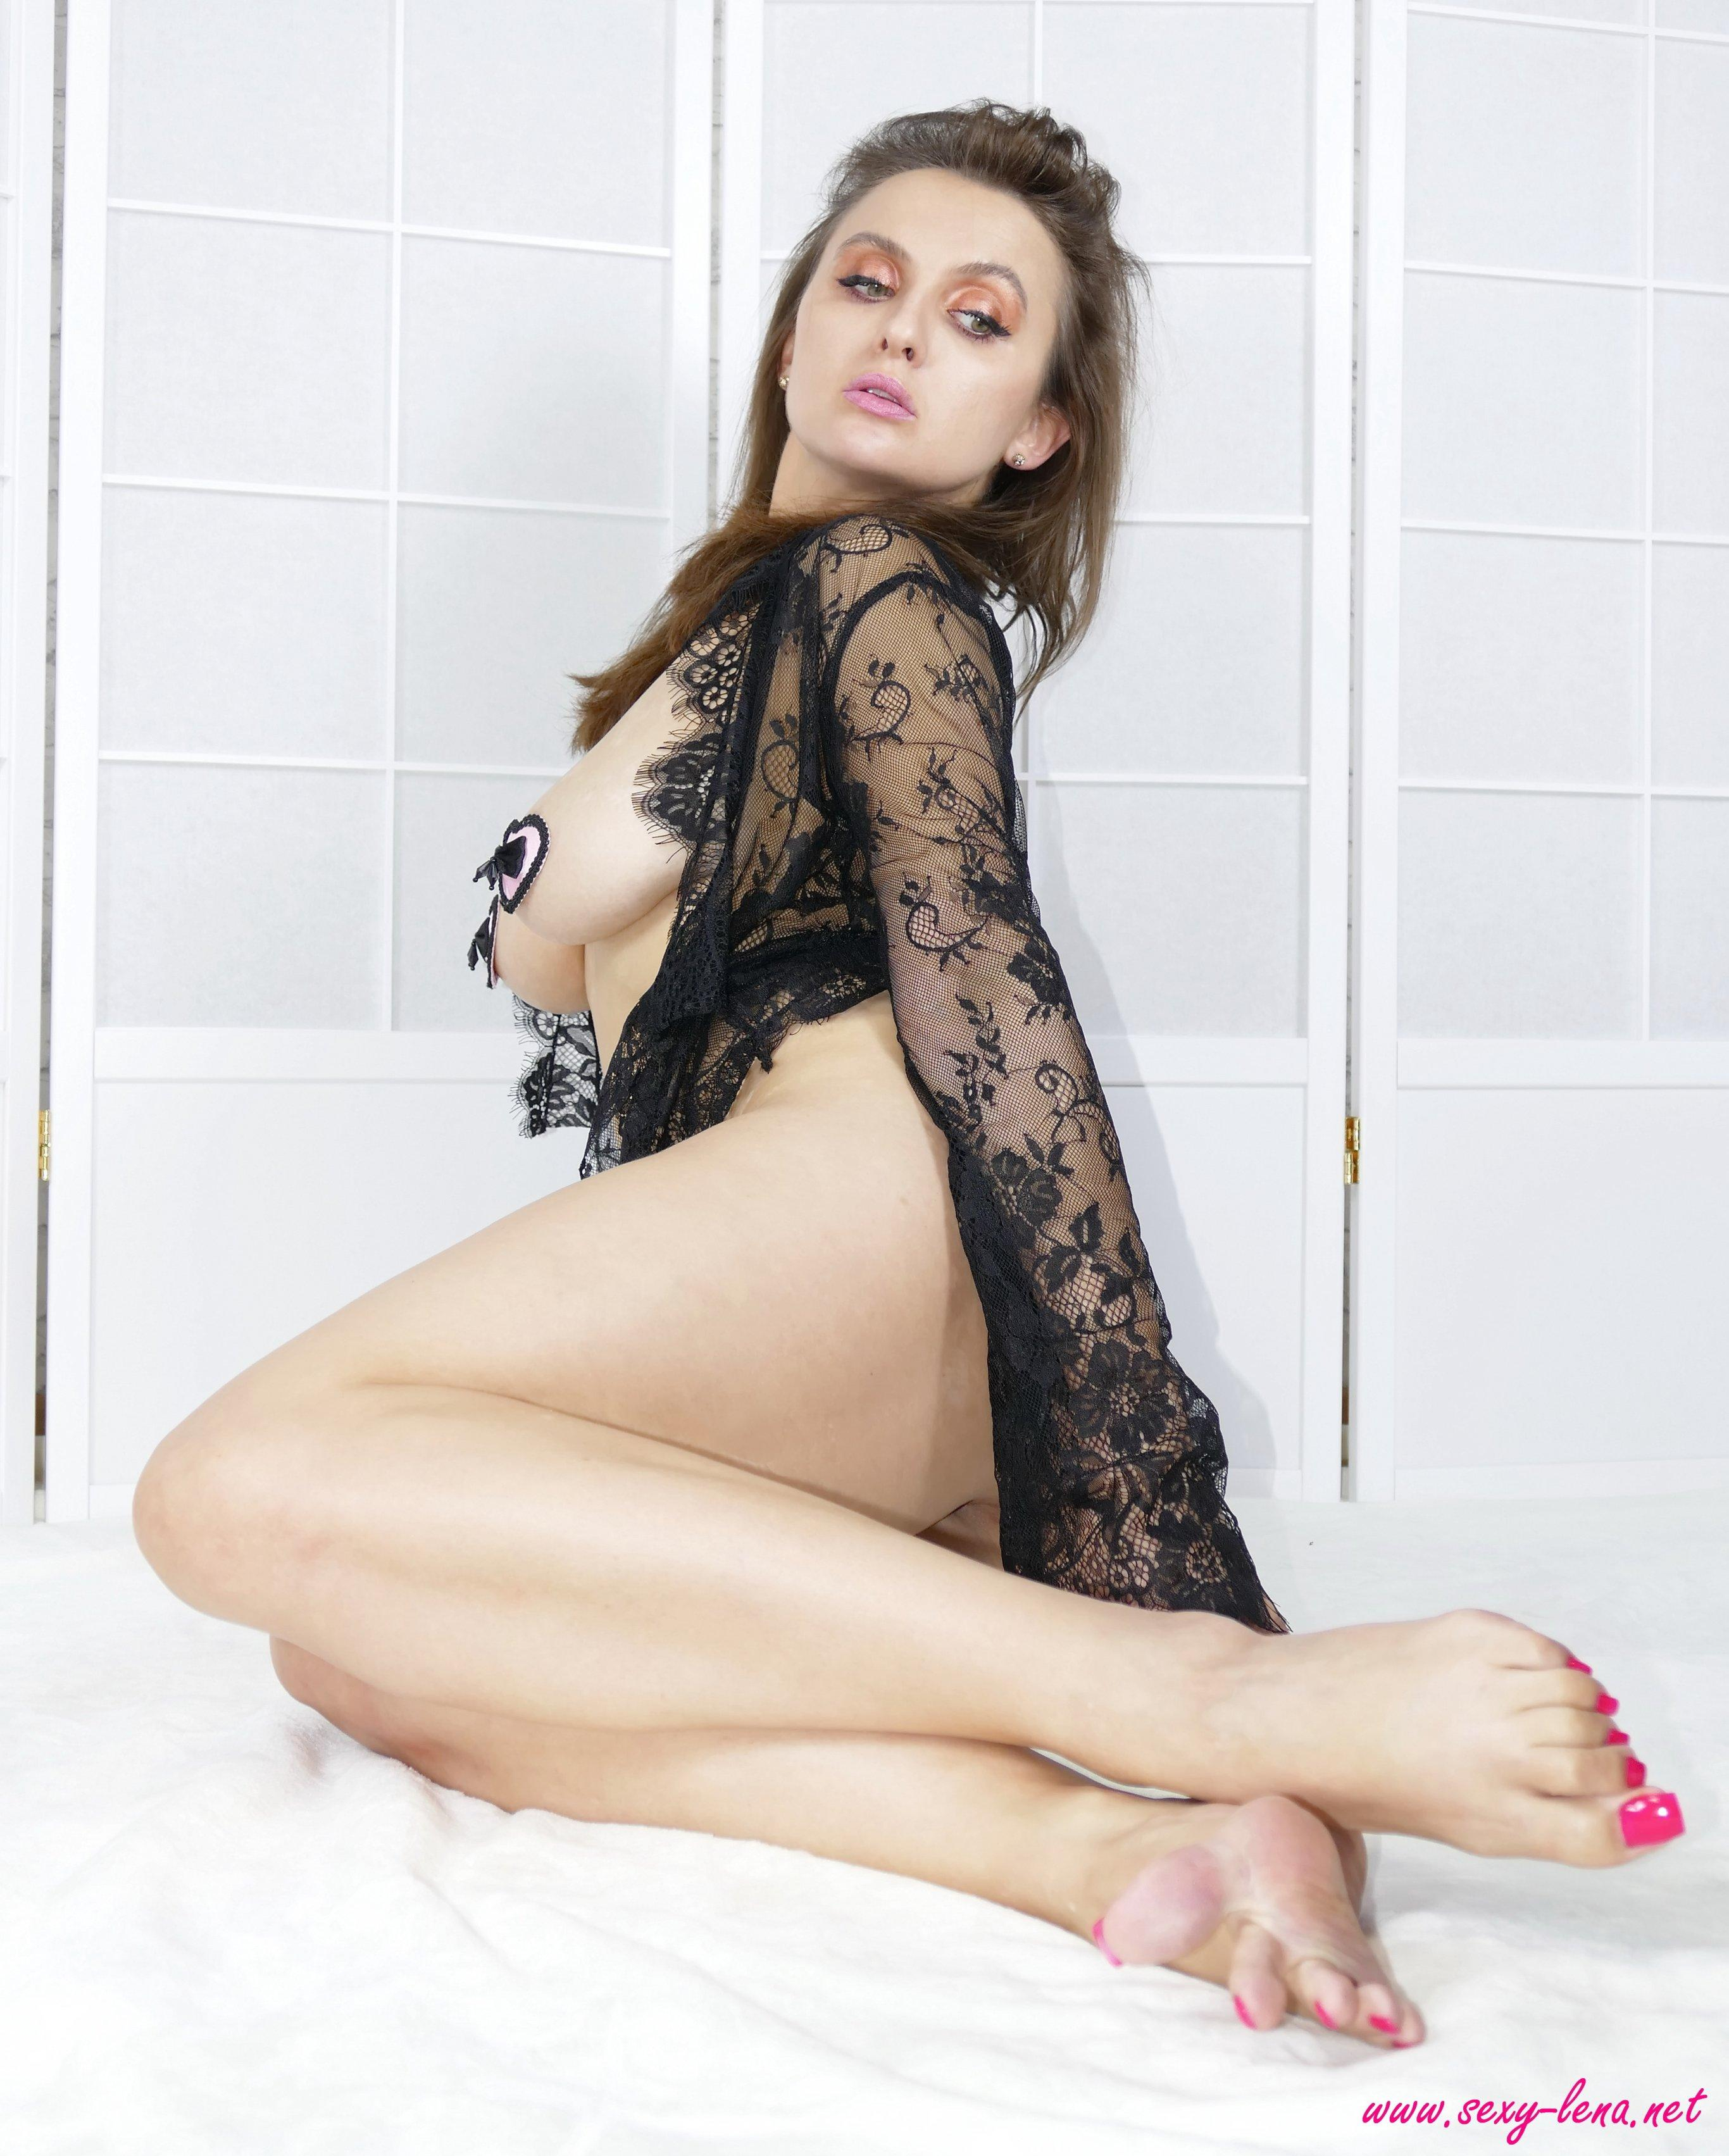 Sexy Lena Shows You Her Sexy Feet  Coed Cherry-1668